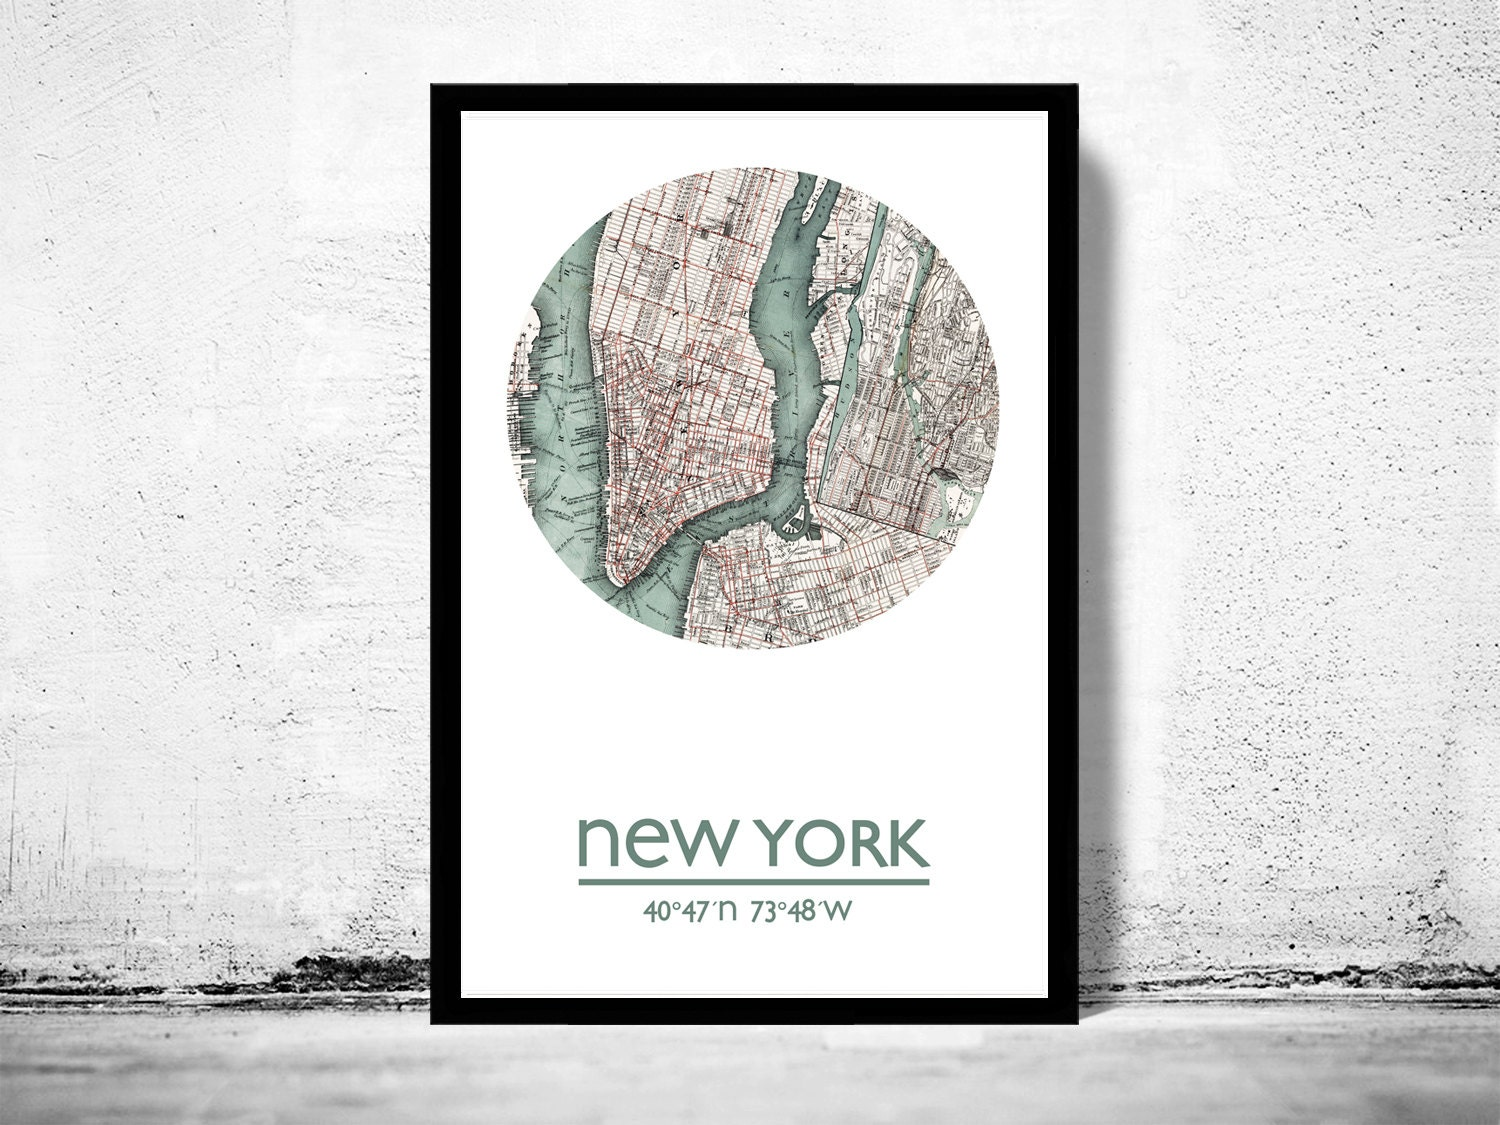 new york city poster city map poster print. Black Bedroom Furniture Sets. Home Design Ideas